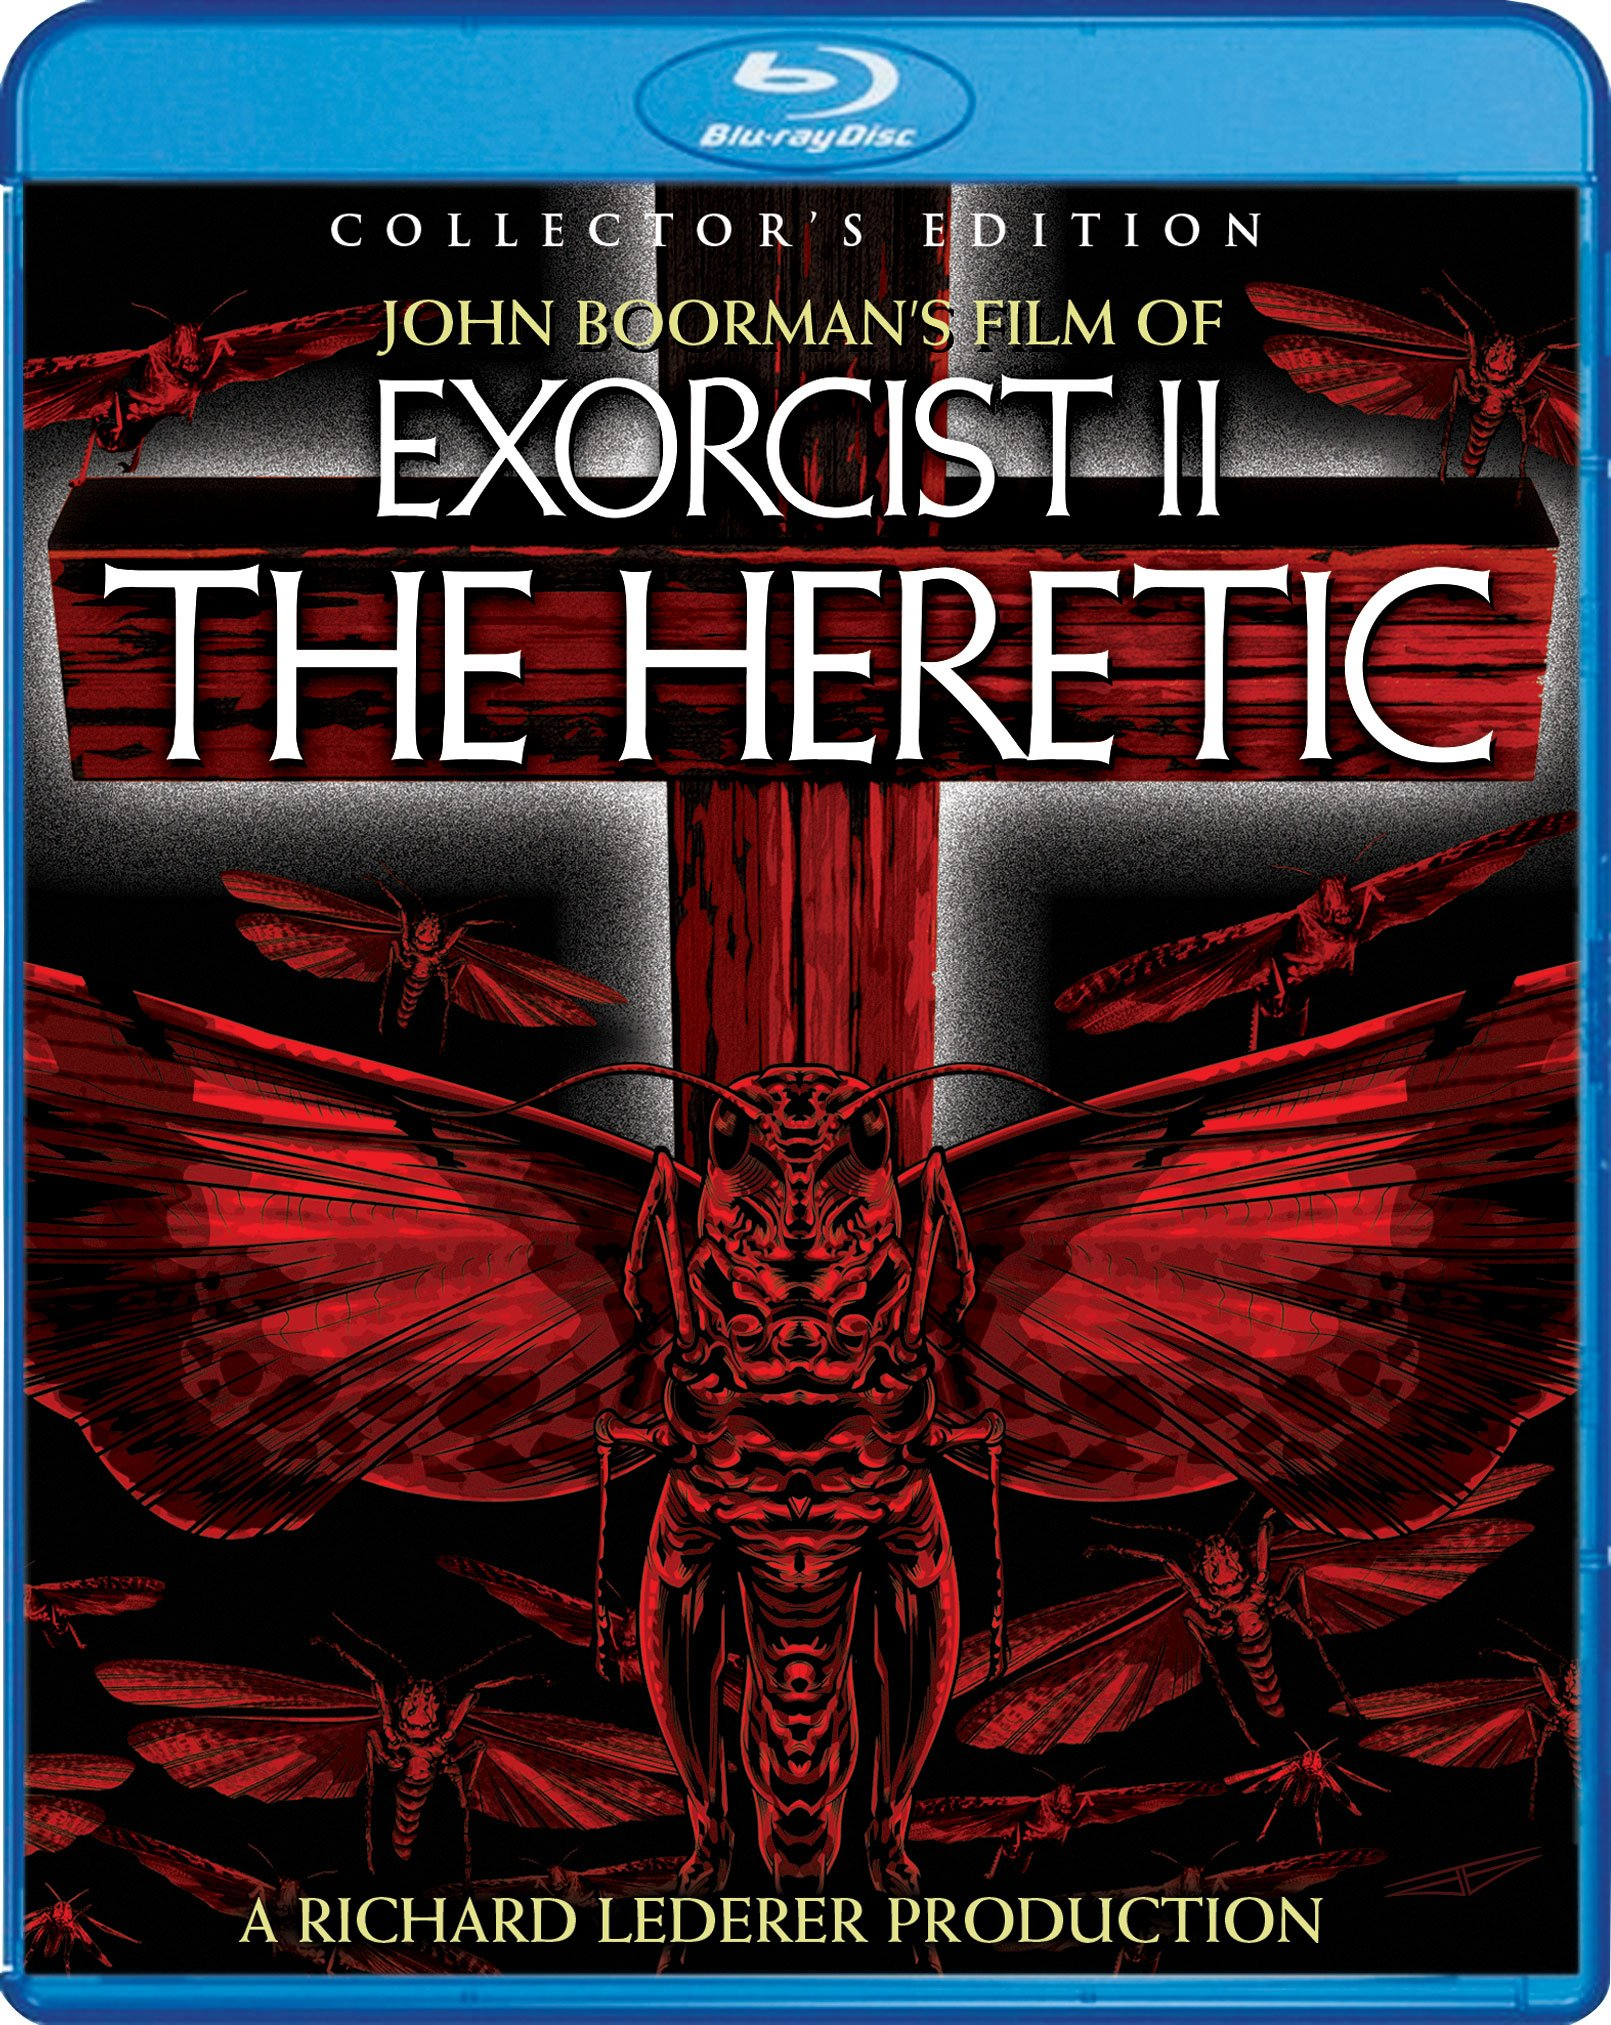 Blu-ray : Exorcist Ii: The Heretic (Collector's Edition, Widescreen, 2 Pack)